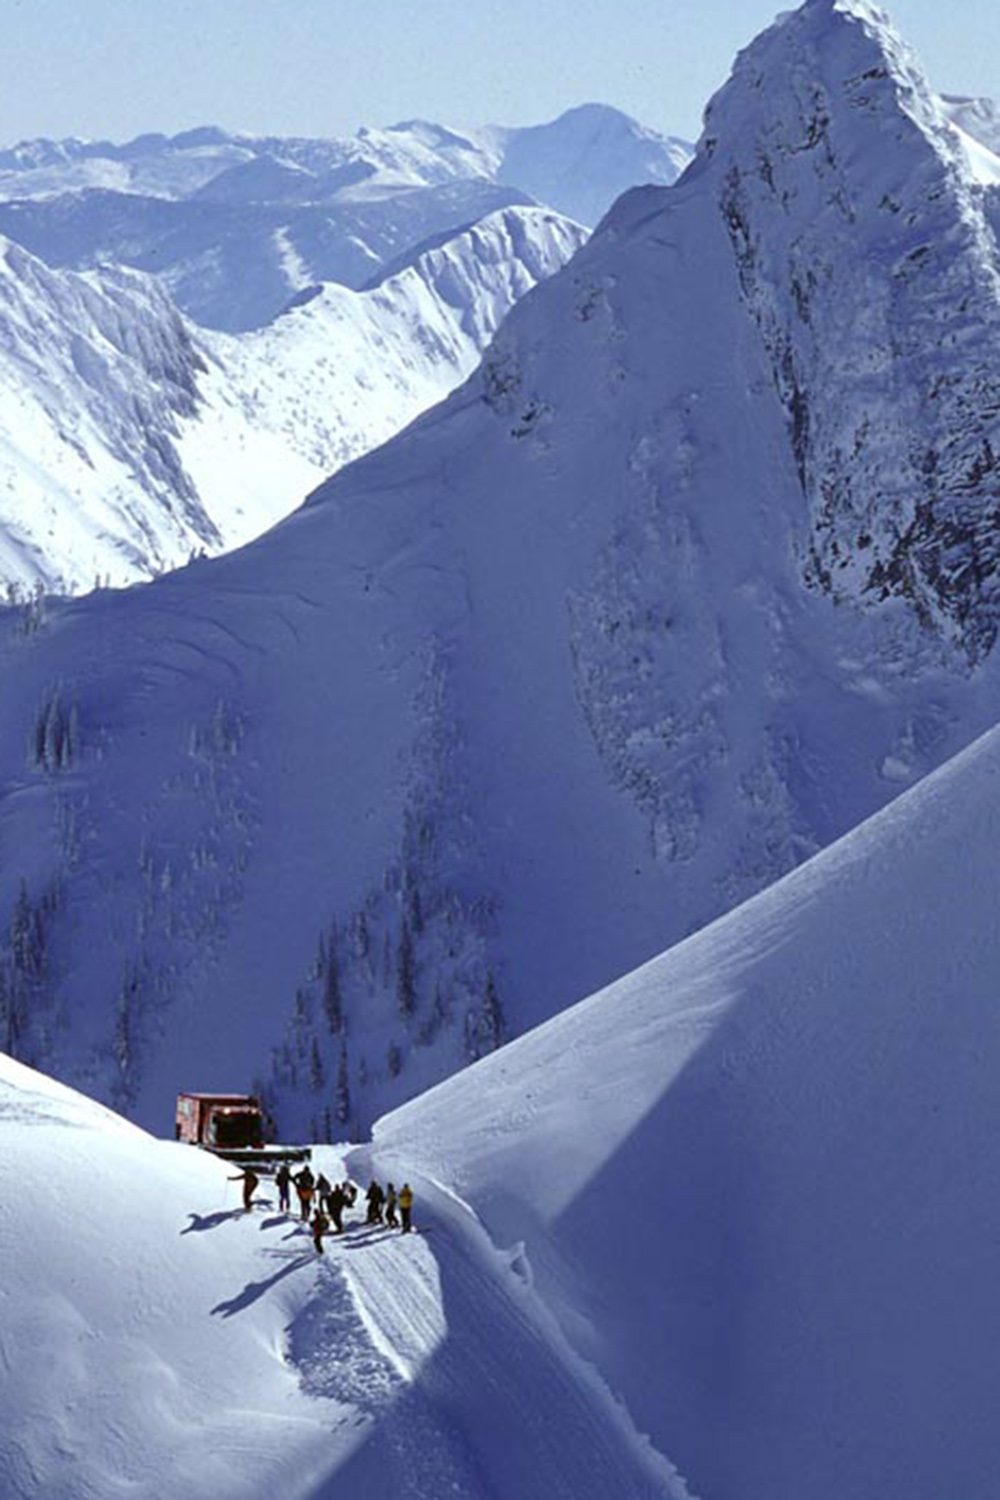 Cat Skiing Advantages - Lower Investment